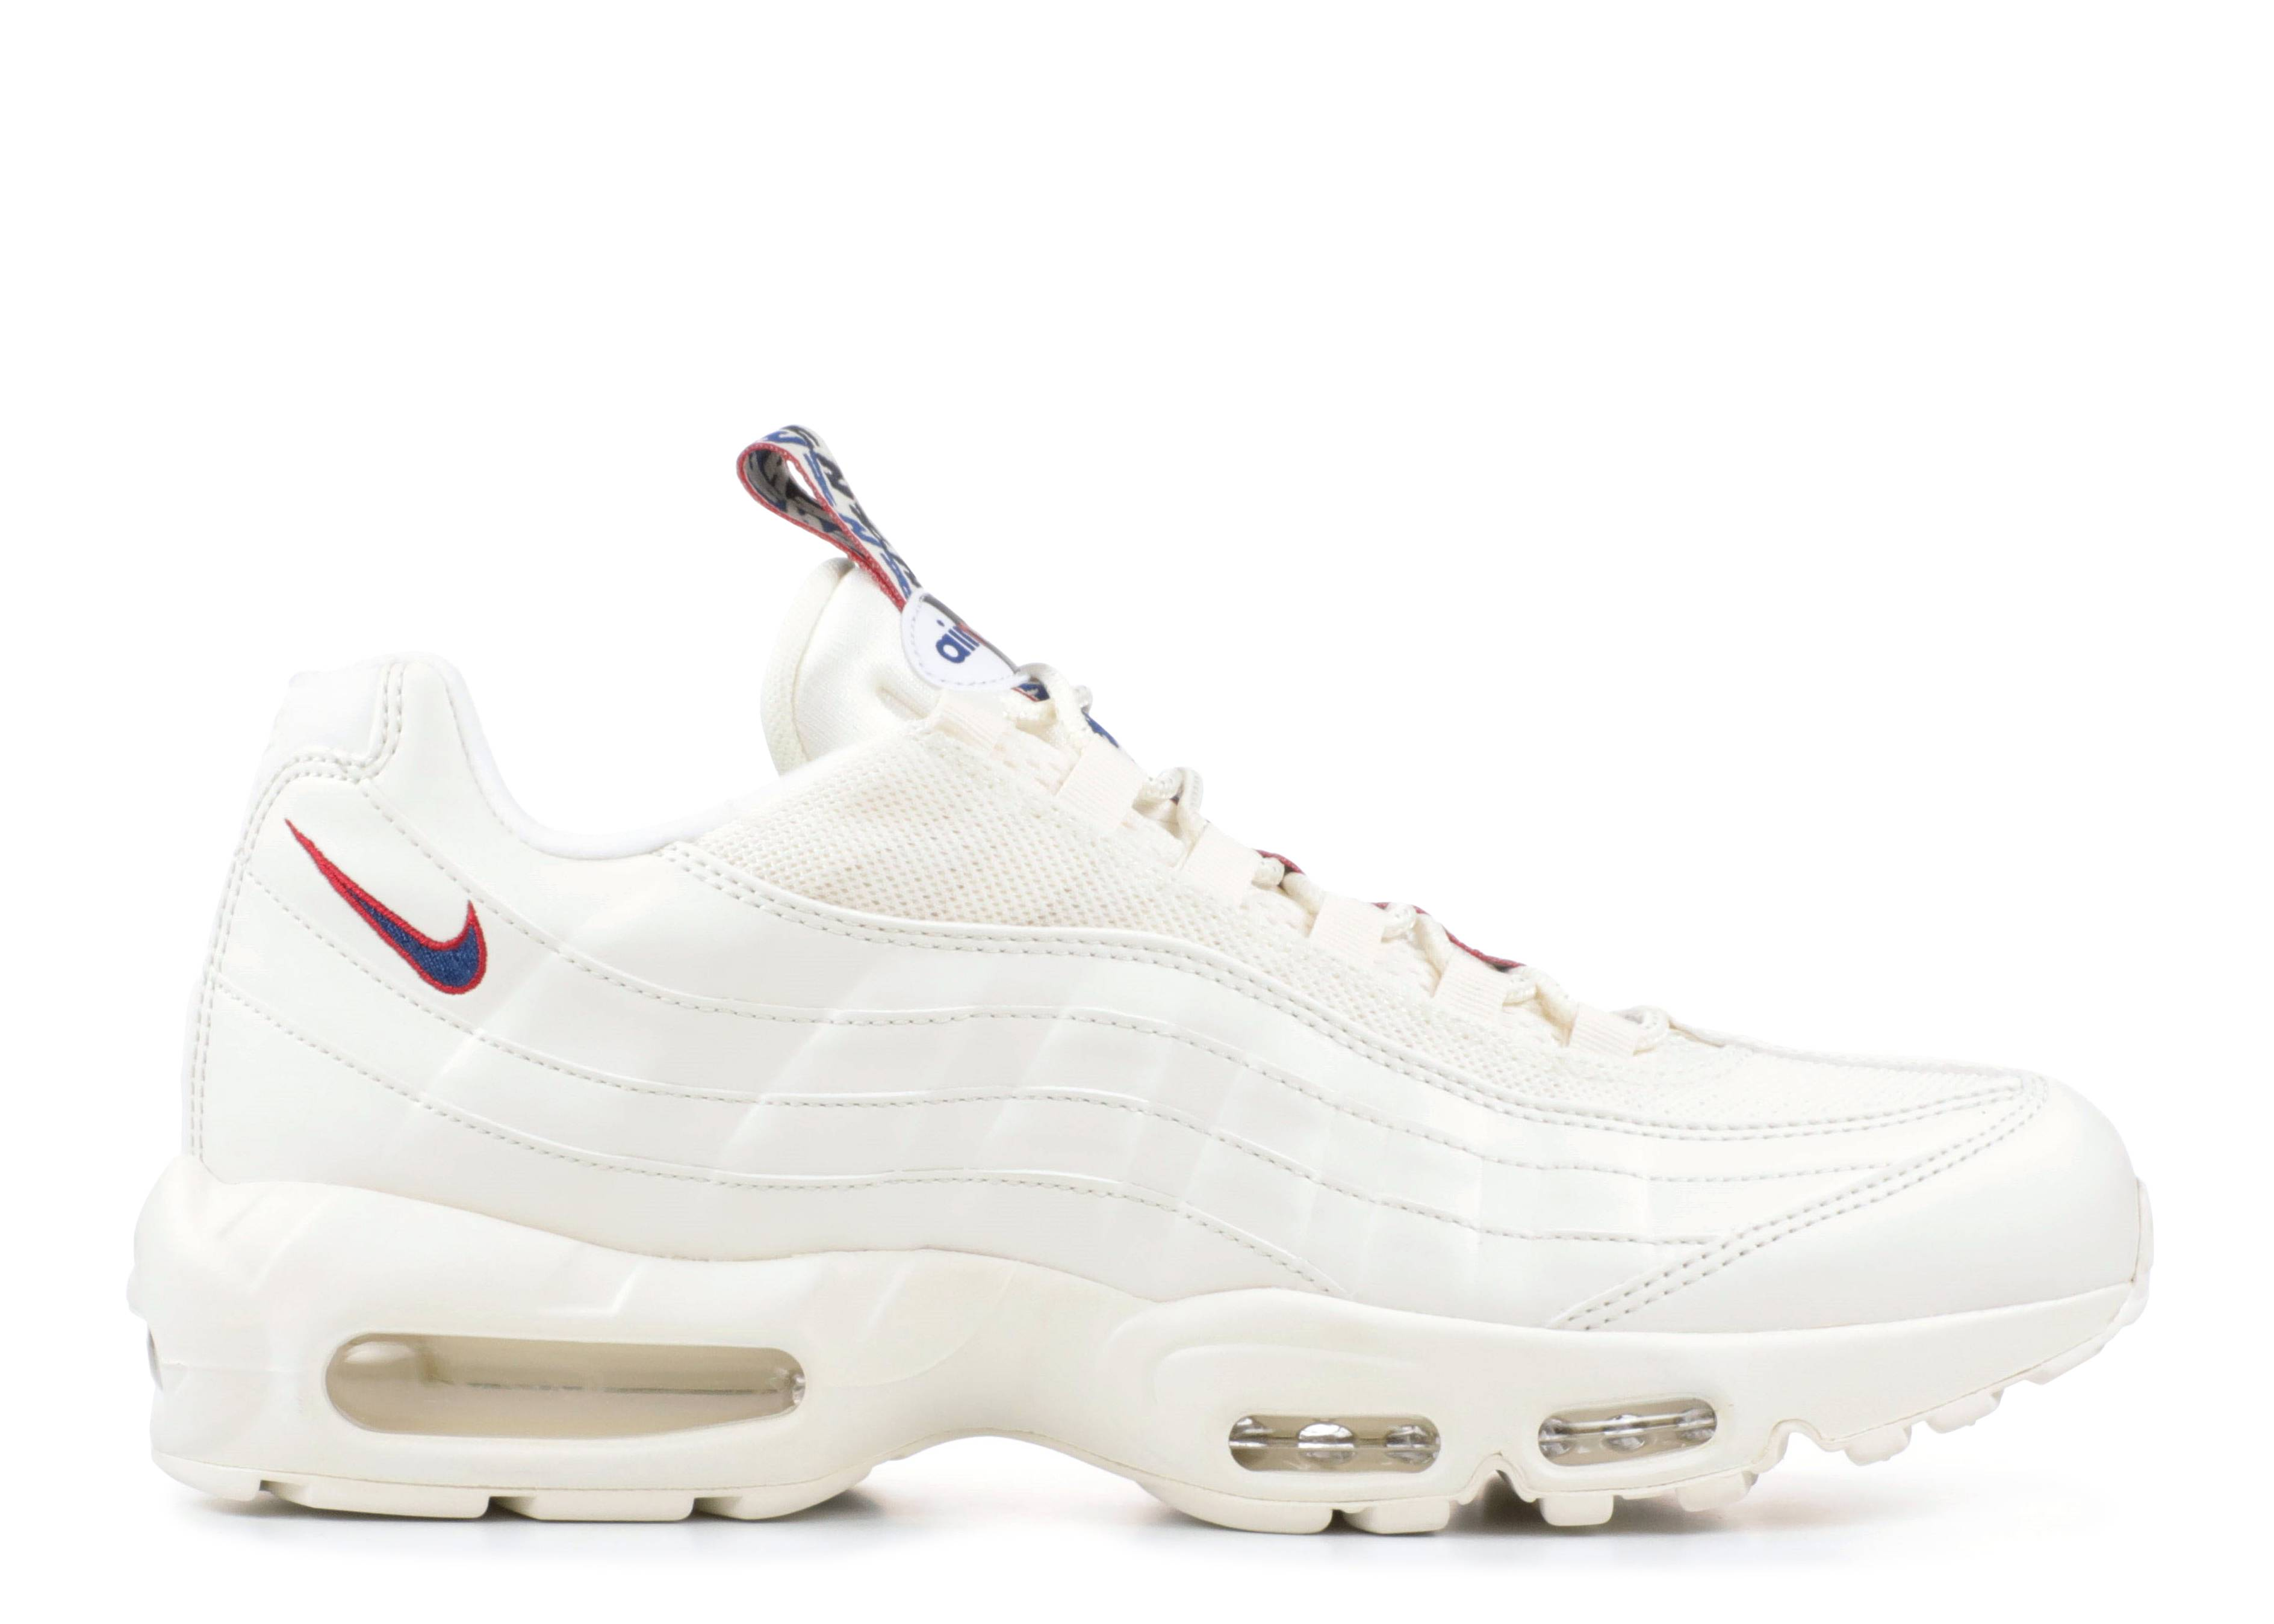 Air Max 95 TT Pull Tab 'Sail'